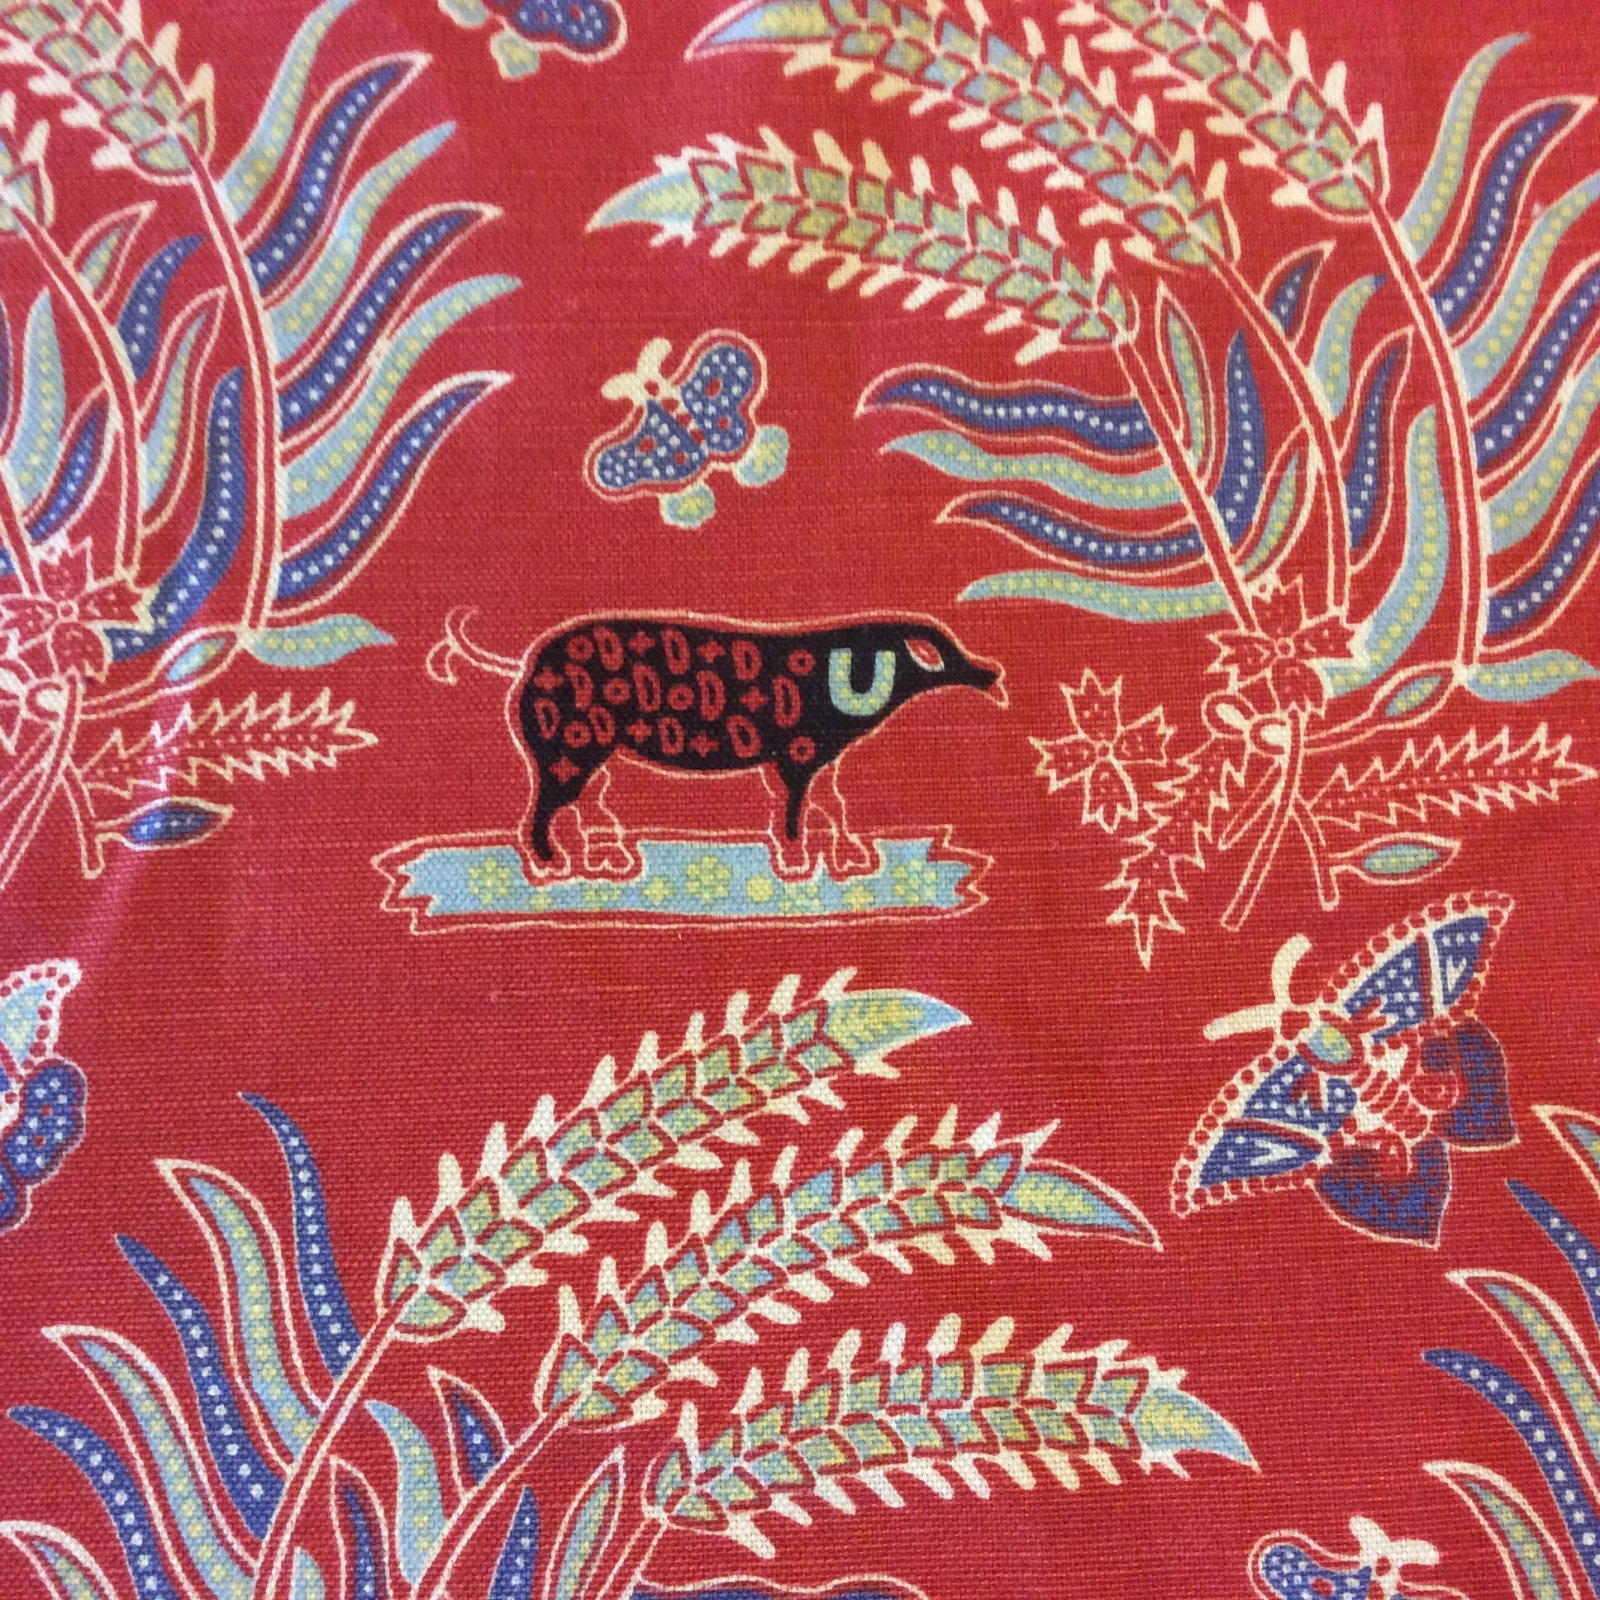 HD047 Red Animal Print Cotton Folk Art Upholstery Drapery Home Decor Fabric